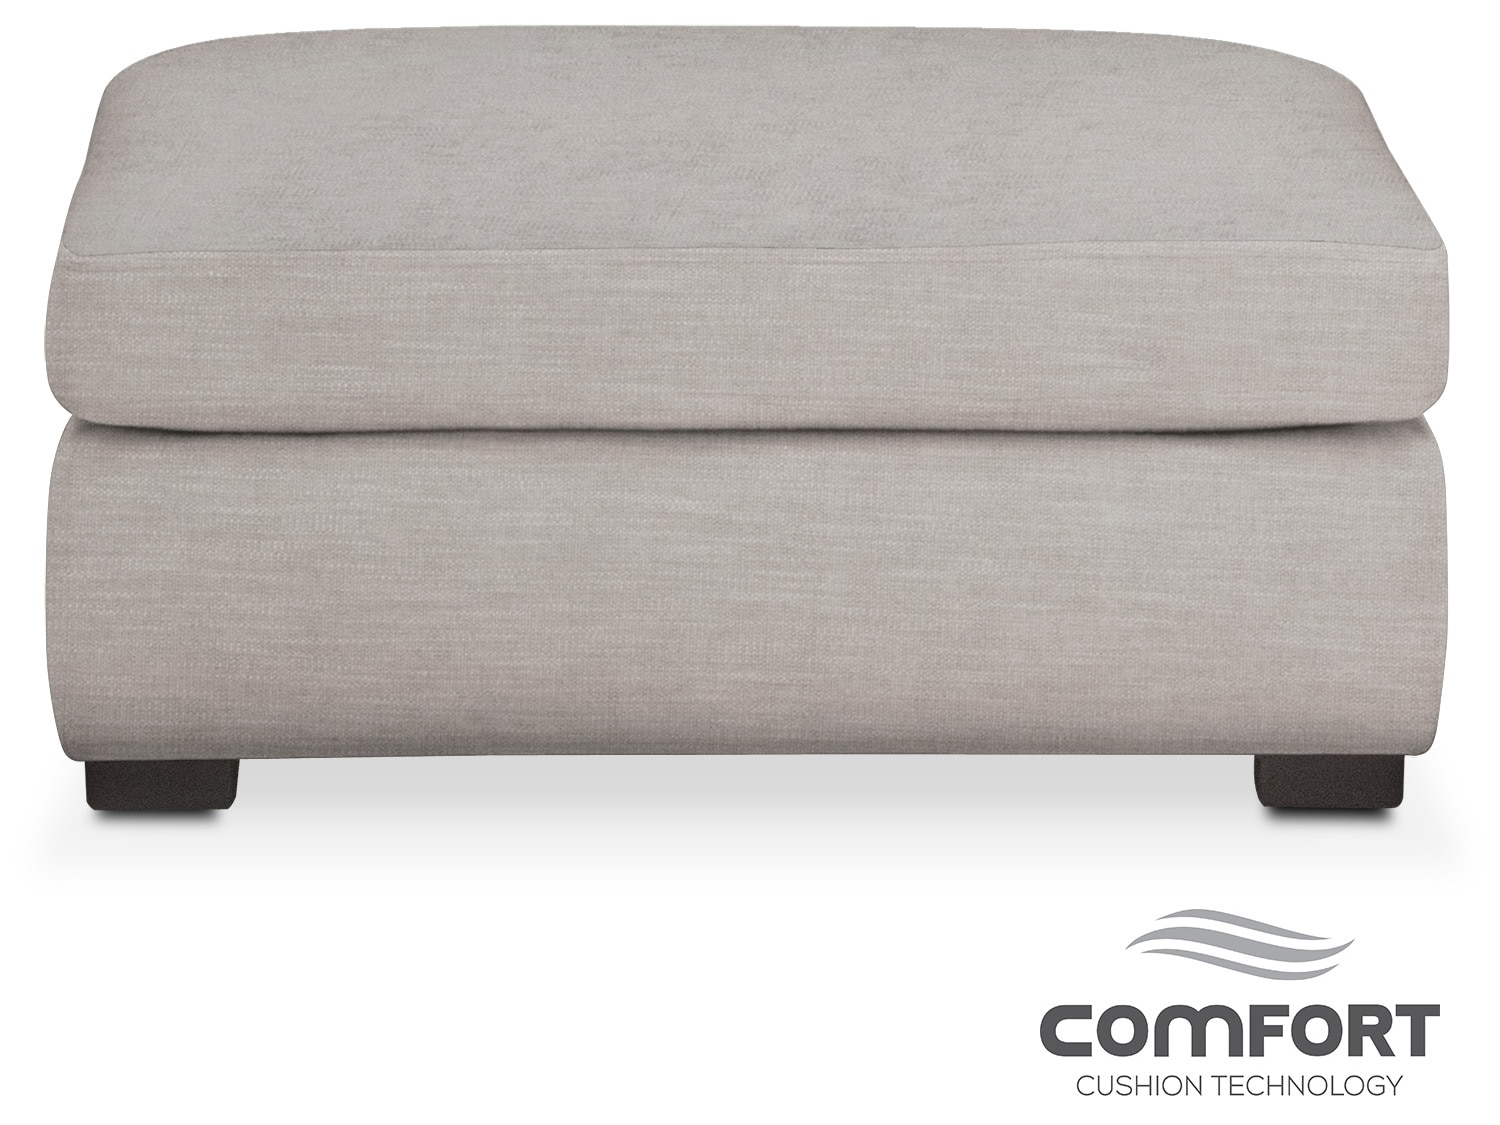 Wonderful Asher Comfort Ottoman   Dudley Gray